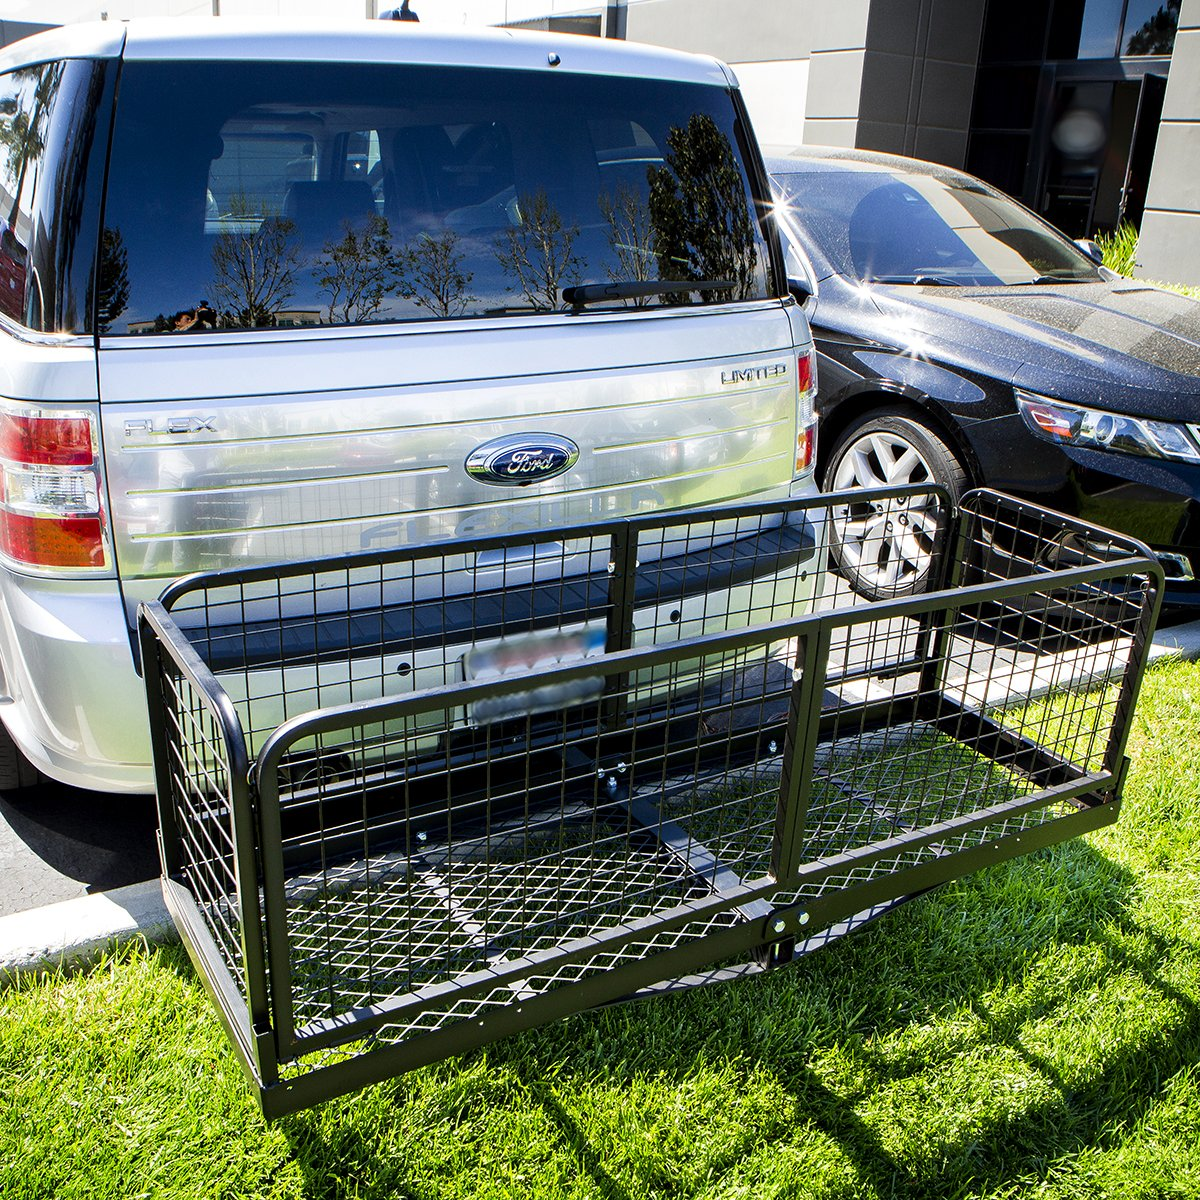 STKUSA Hitch Cargo Carrier with Basket Capacity 500 Lbs 2' Receivers